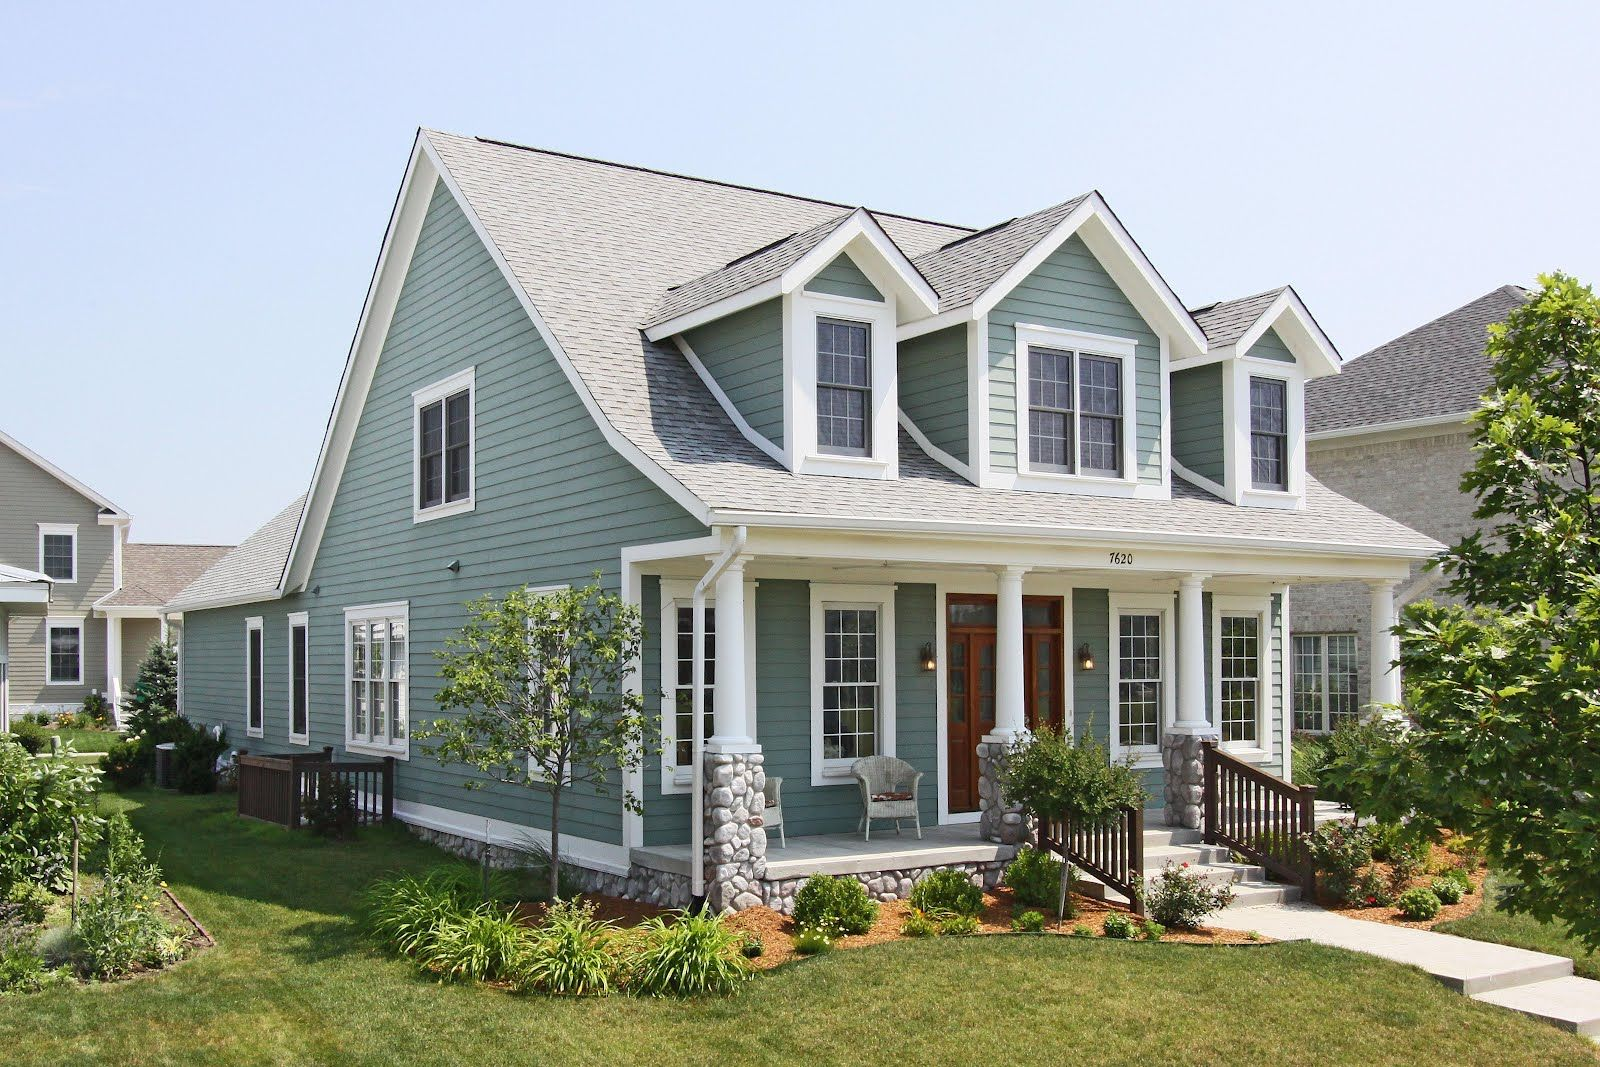 Porch and dormers cape cod style pinterest porch for House plans with dormers and front porch